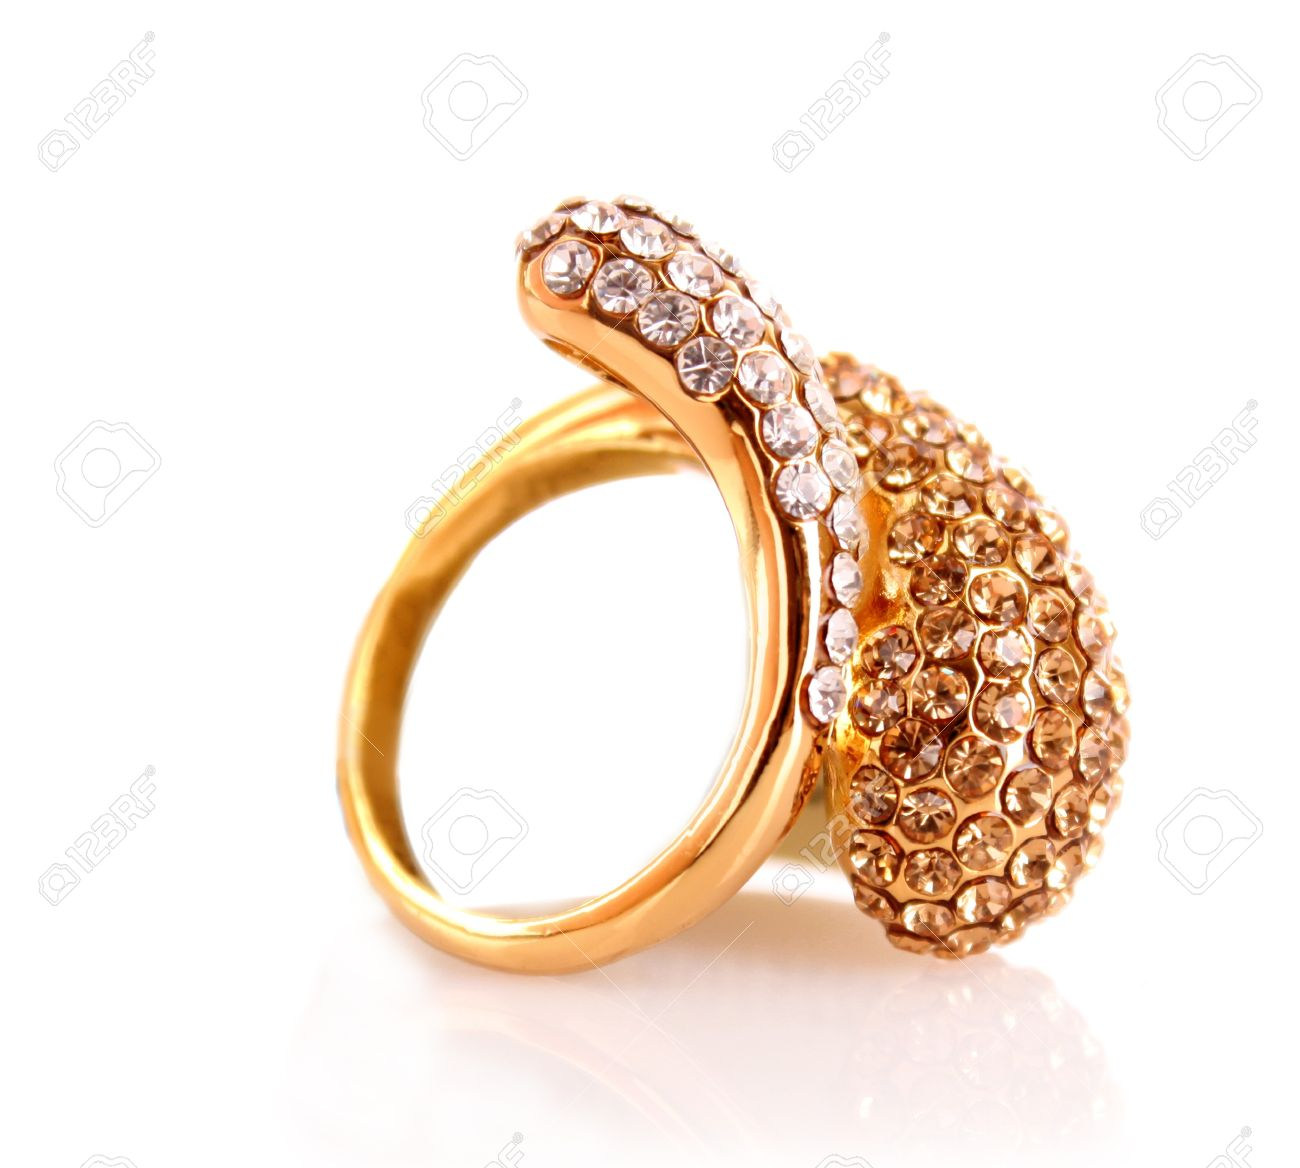 Gold Jewellery Images & Stock Pictures. Royalty Free Gold ...